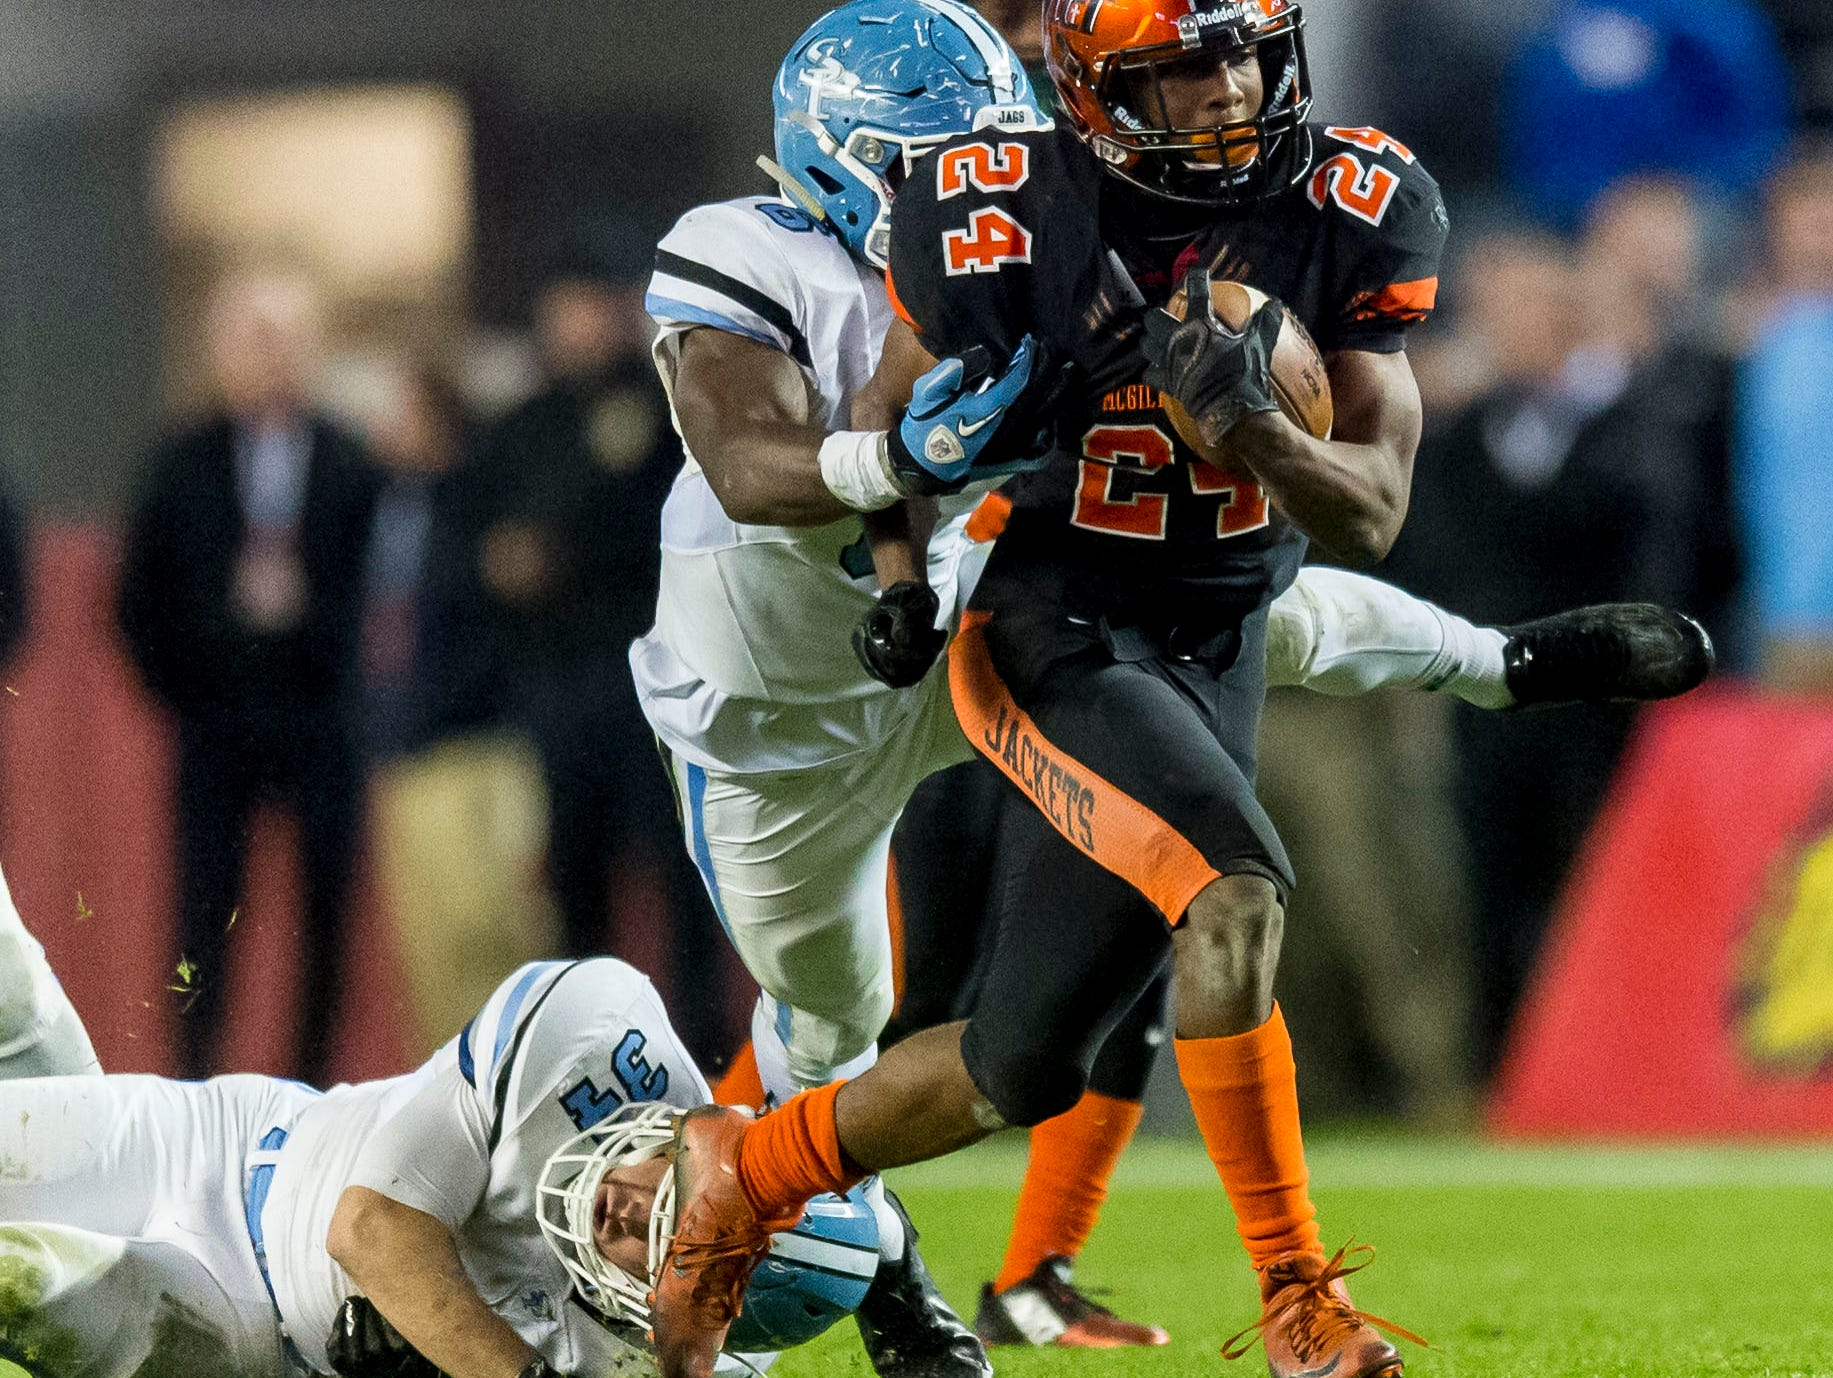 McGill-Toolen's Terrell Kennedy sheds two tacklers on the way to a 54-yard touchdowns in the second quarter of the Yellow Jackets' 14-12 win over Spain Park for the 7A championship Wednesday.